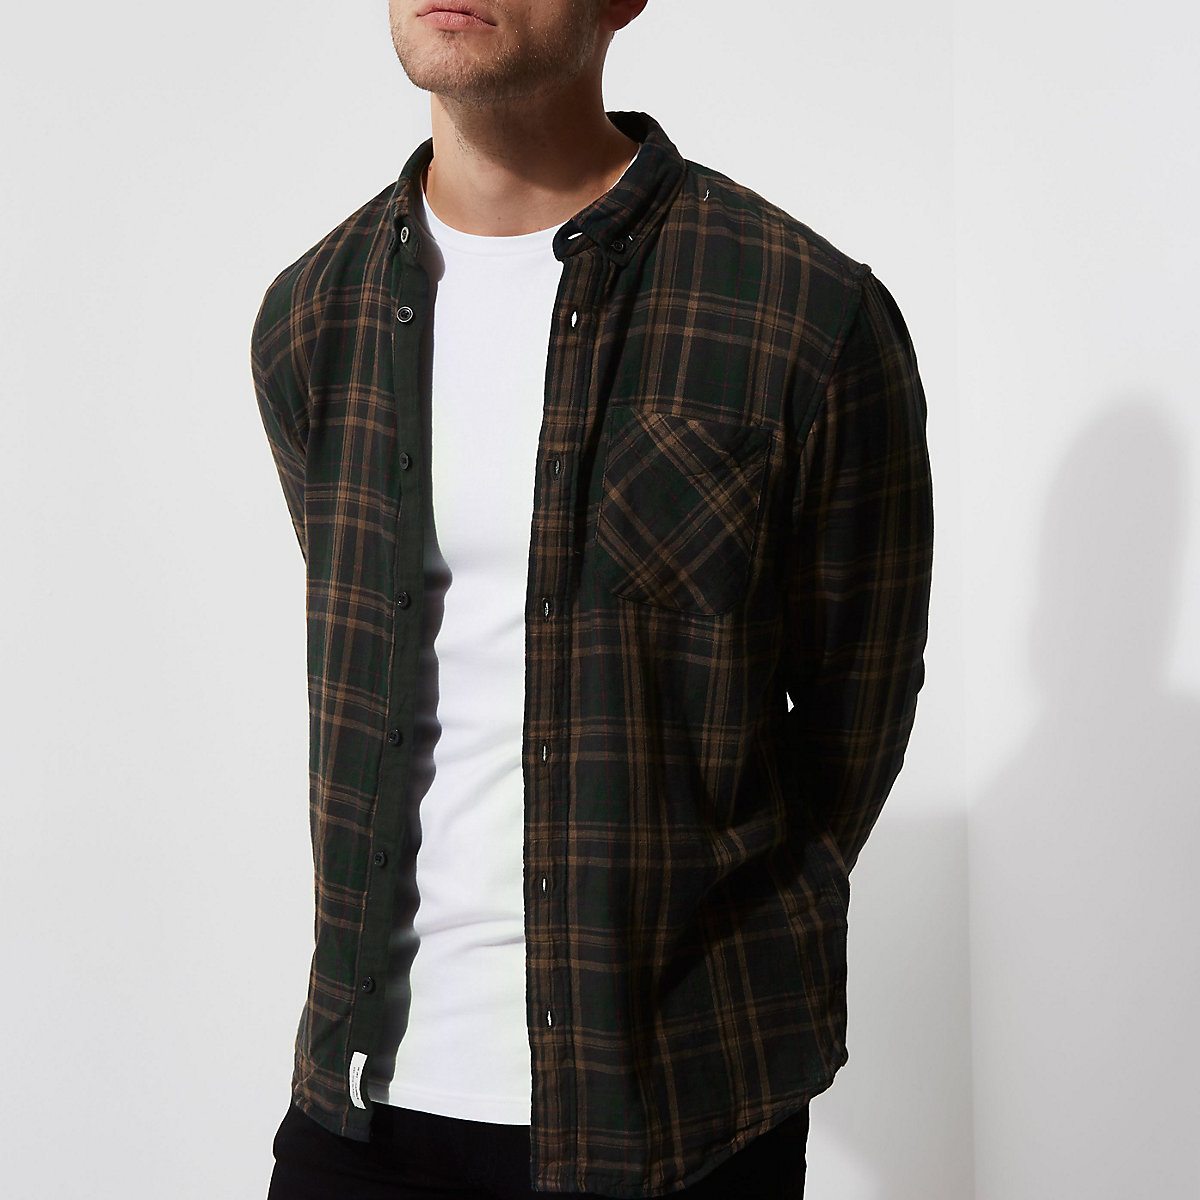 Green double face check long sleeve shirt